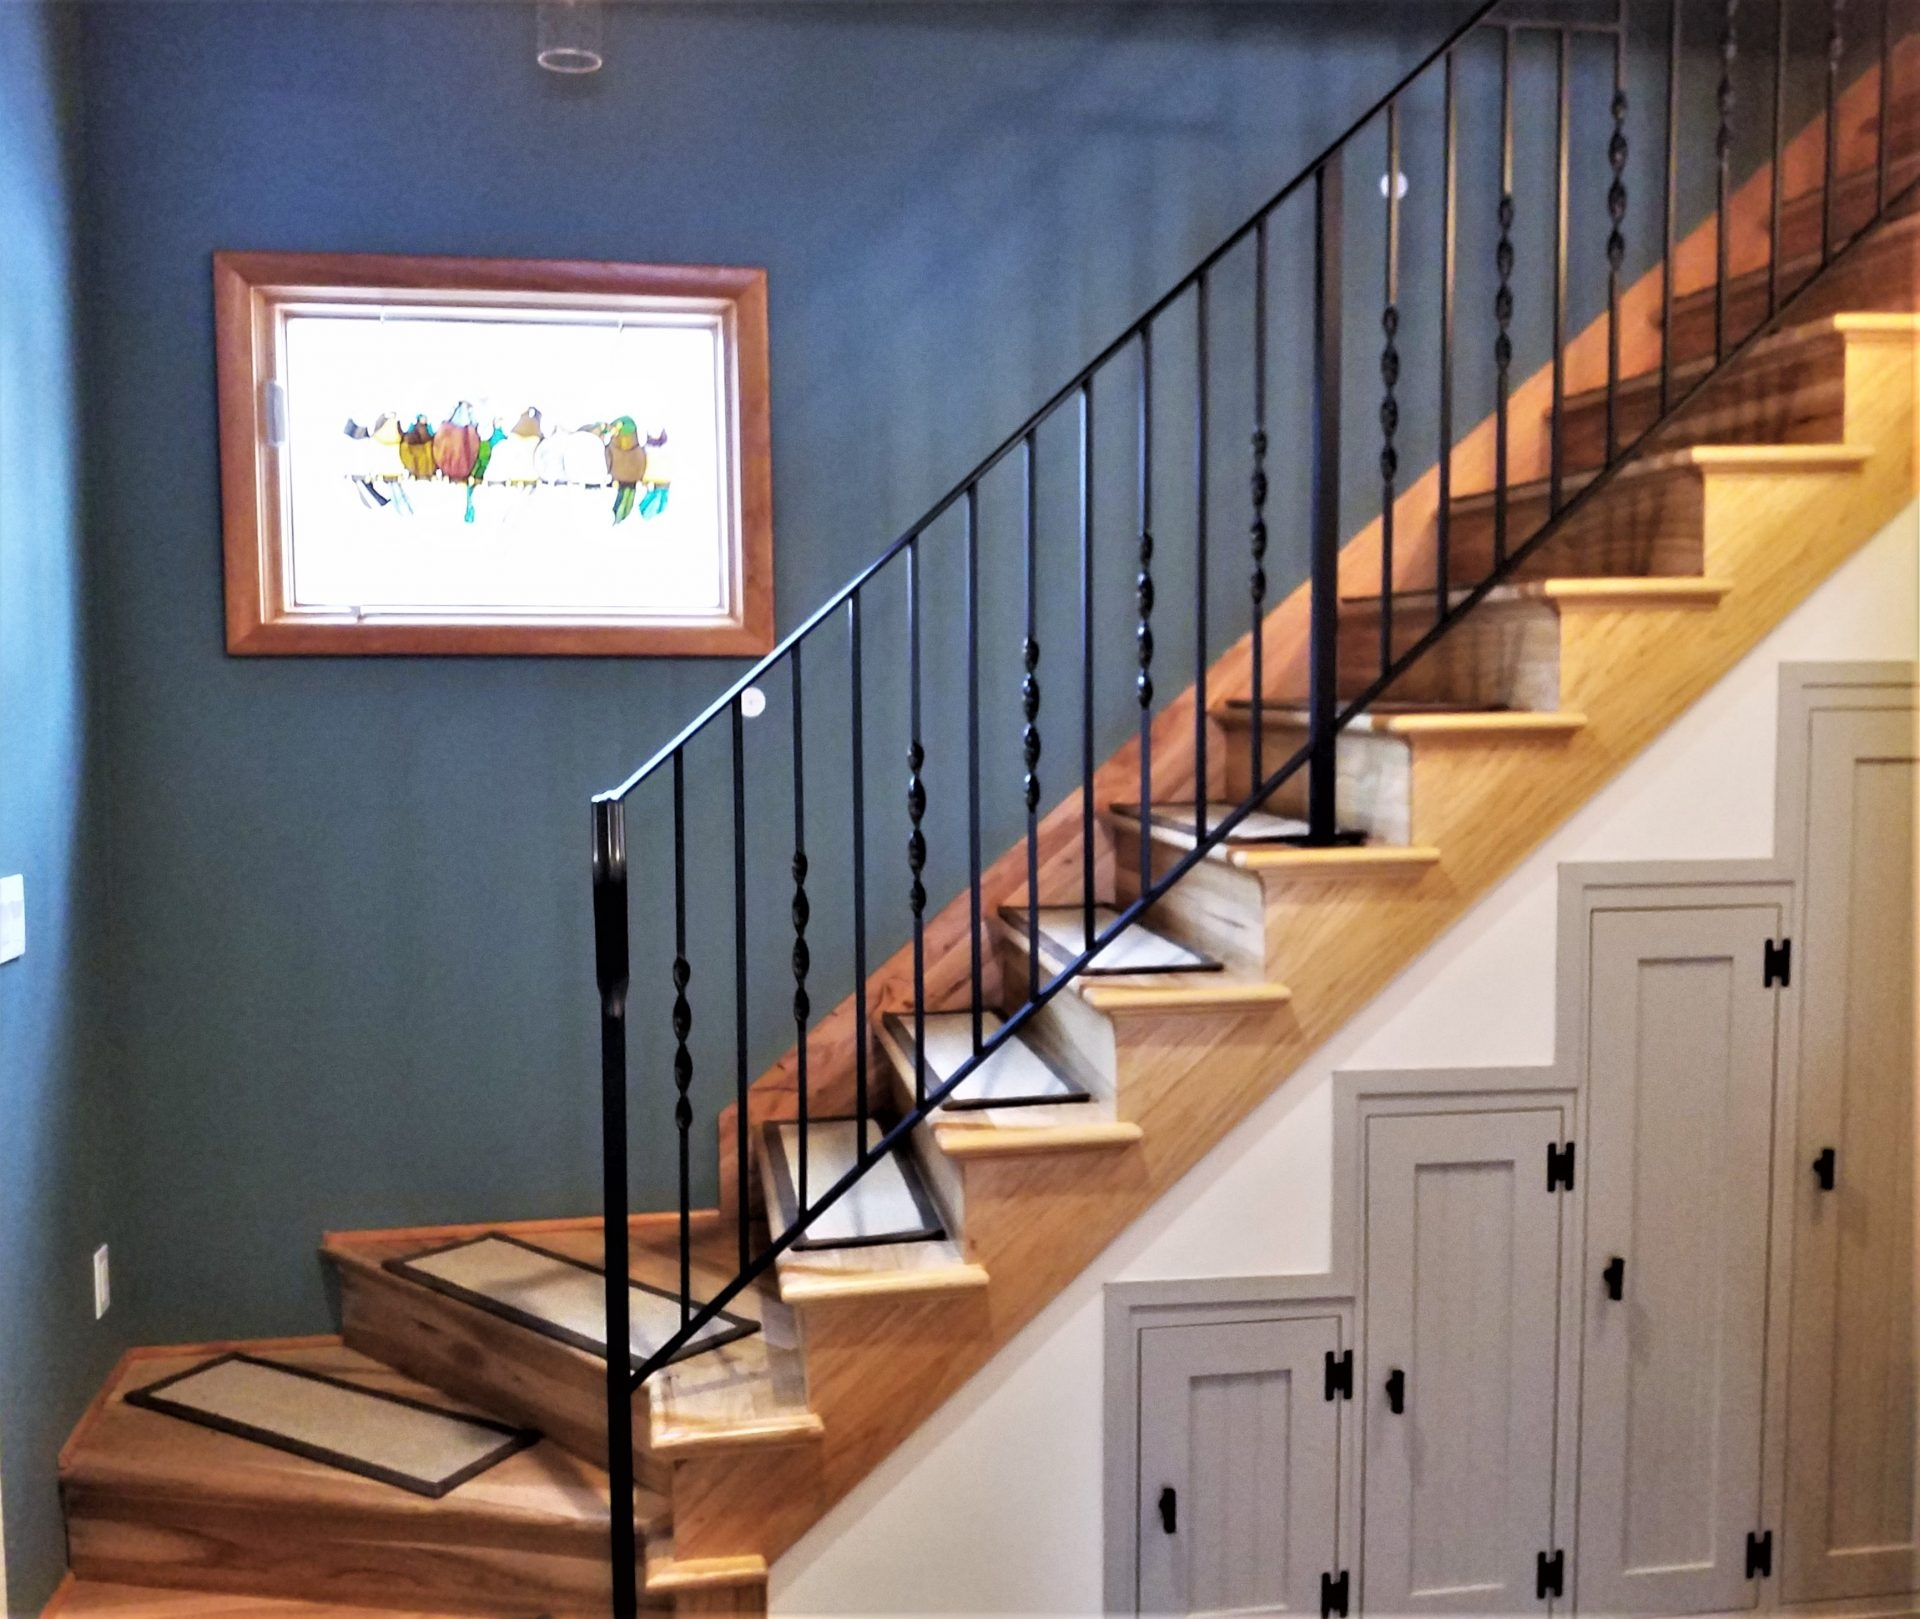 Twisted Wrought Iron Stair Railing Great Lakes Metal Fabrication   Wrought Iron Stair Handrail   Classic   Wall Mounted   Outdoor   Black And Light Wood   Residential